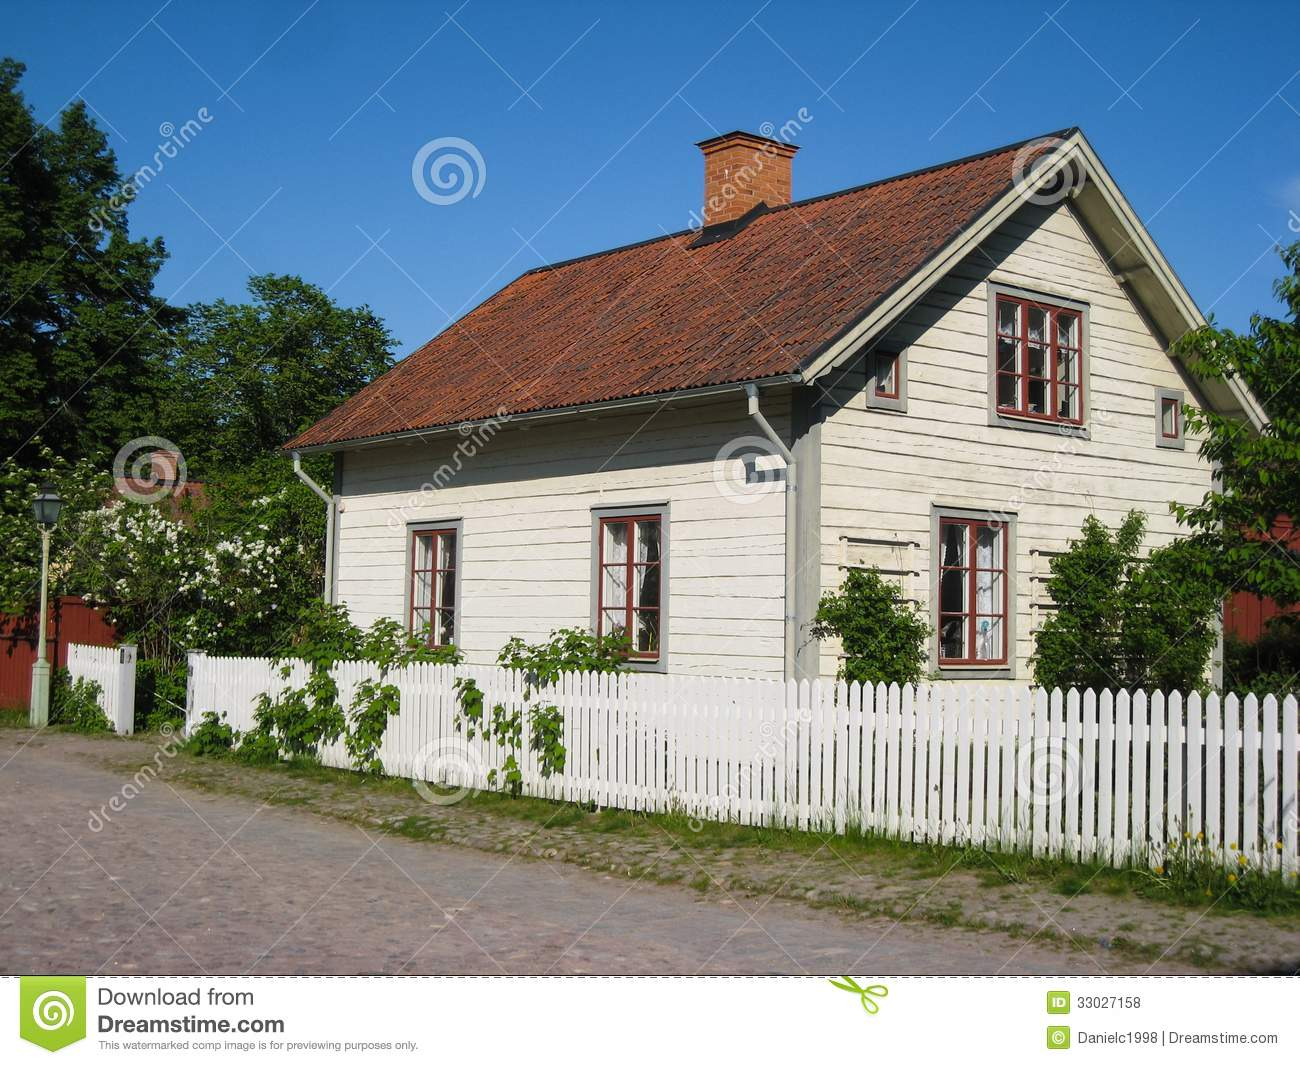 Old traditional swedish house linkoping sweden royalty for Old traditional houses